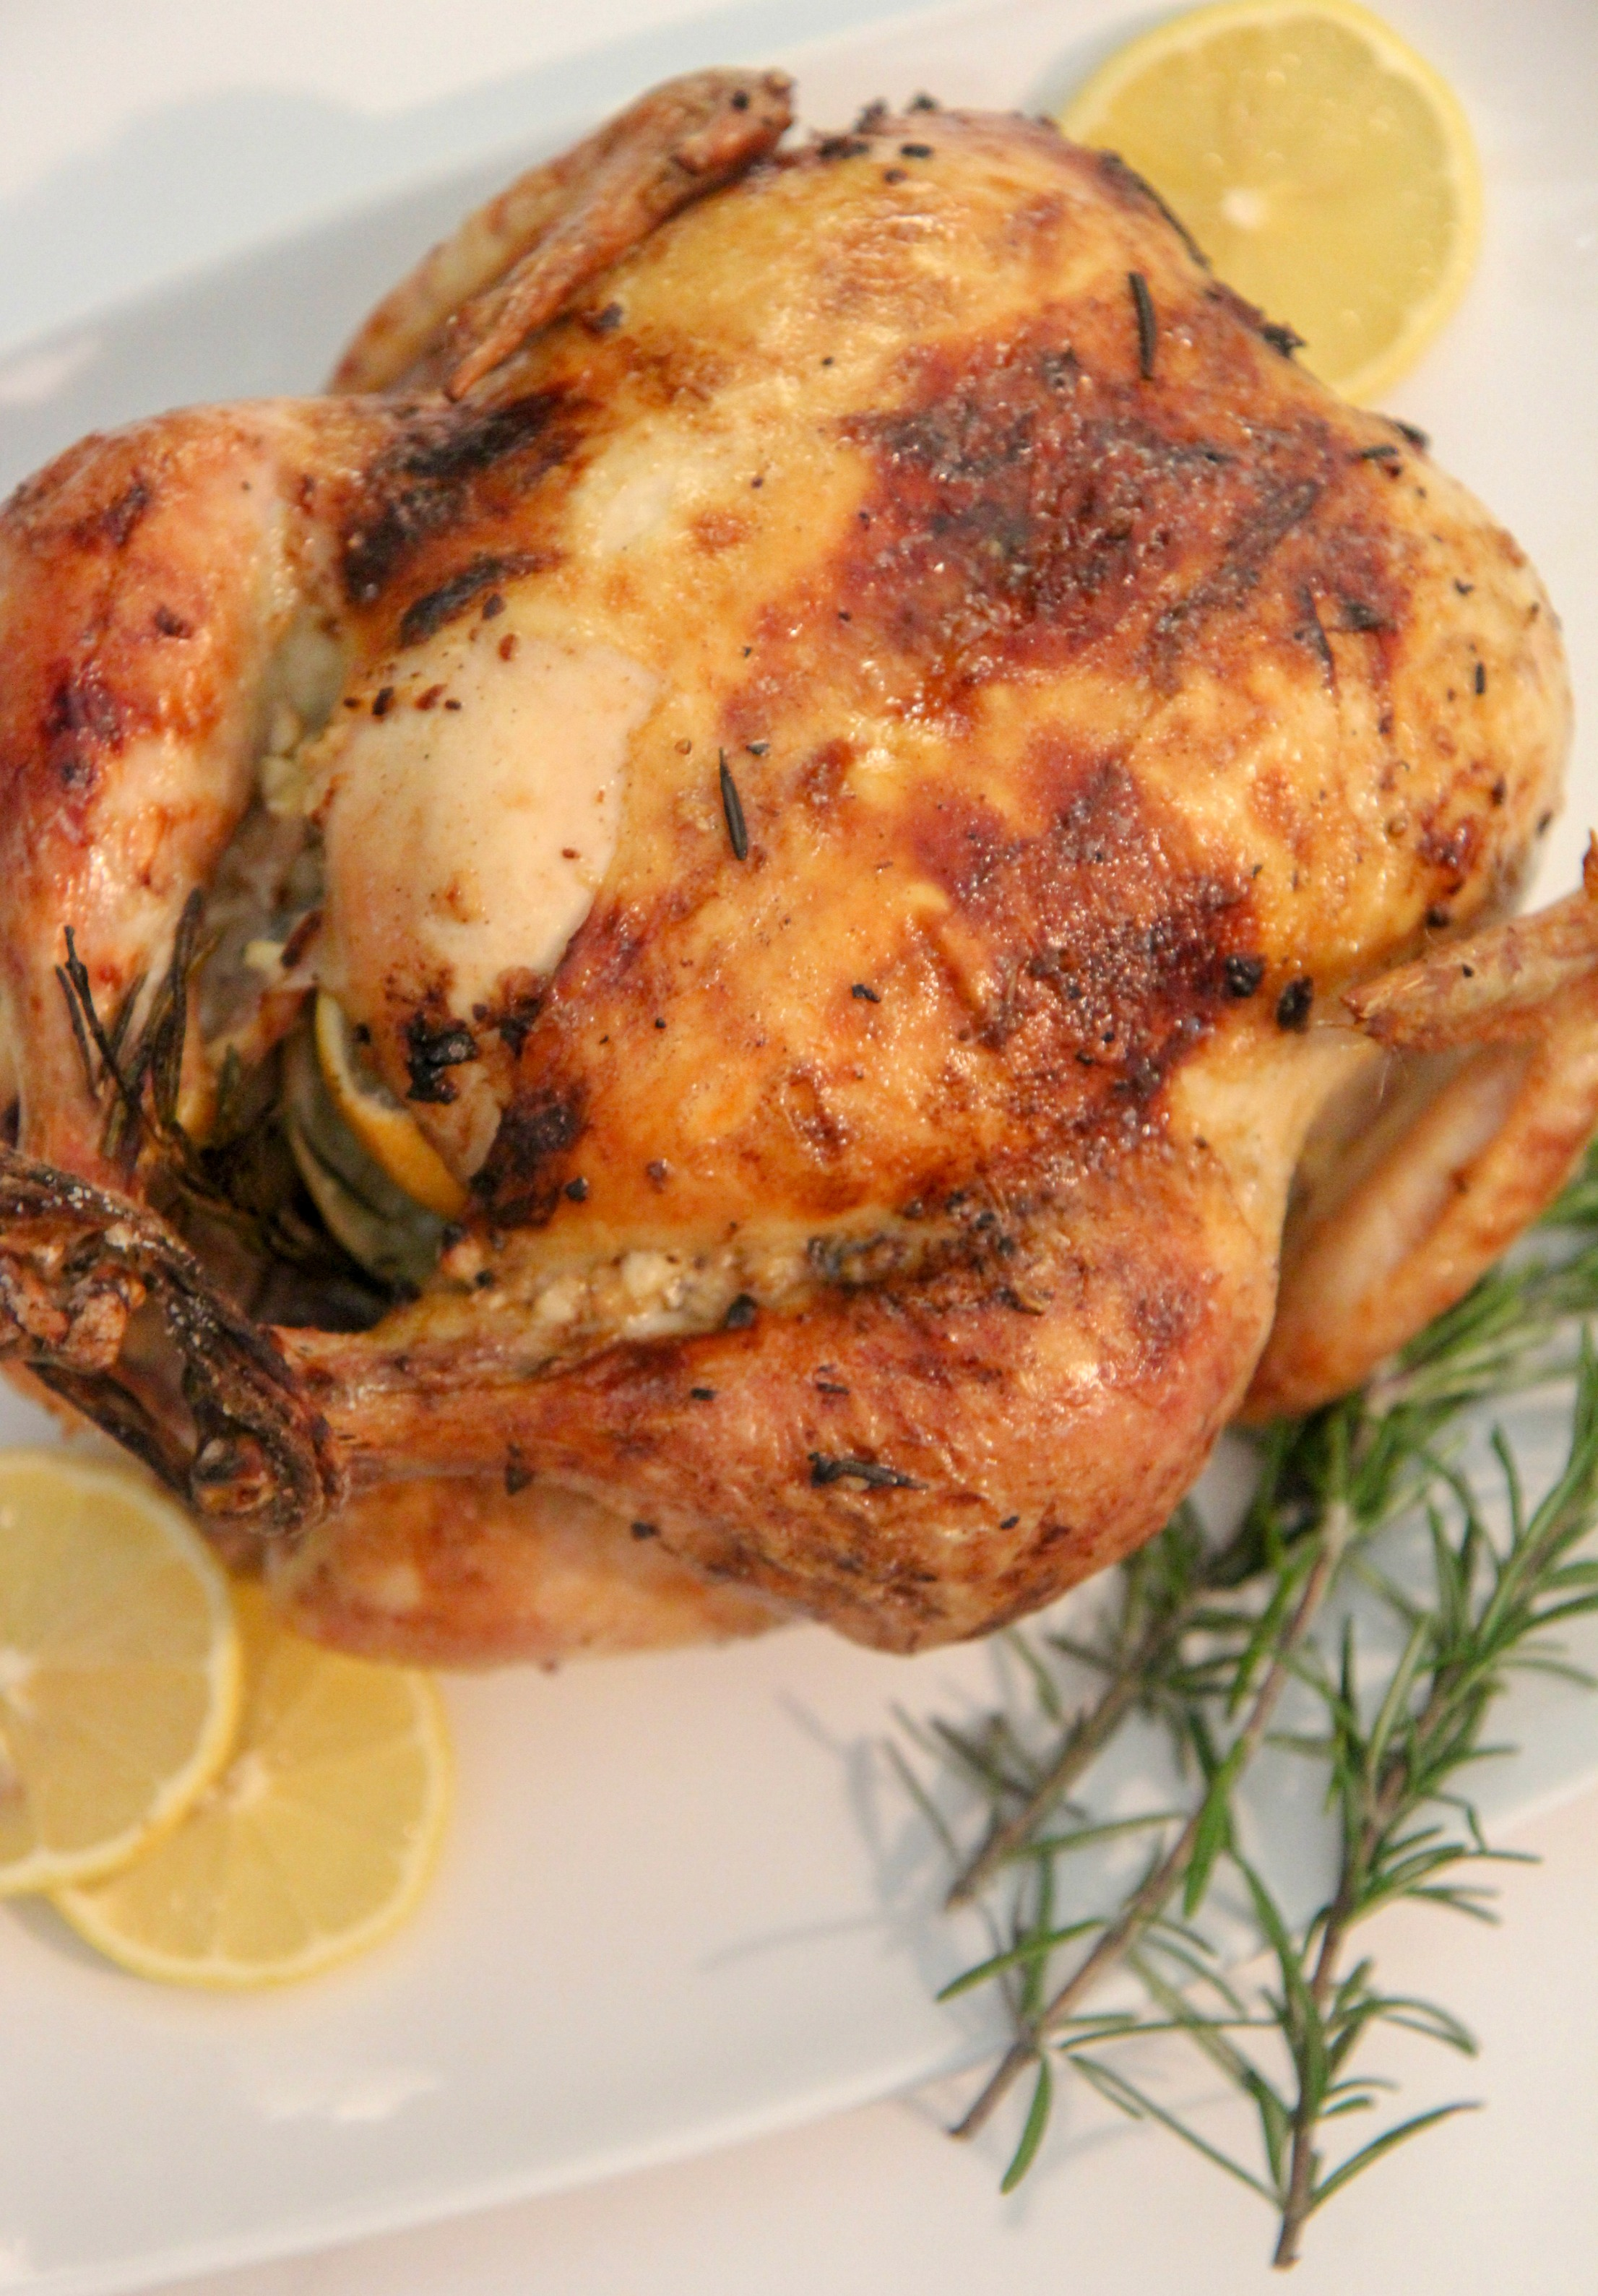 lemon garlic roast chicken on a white platter with rosemary sprigs and lemon slices.